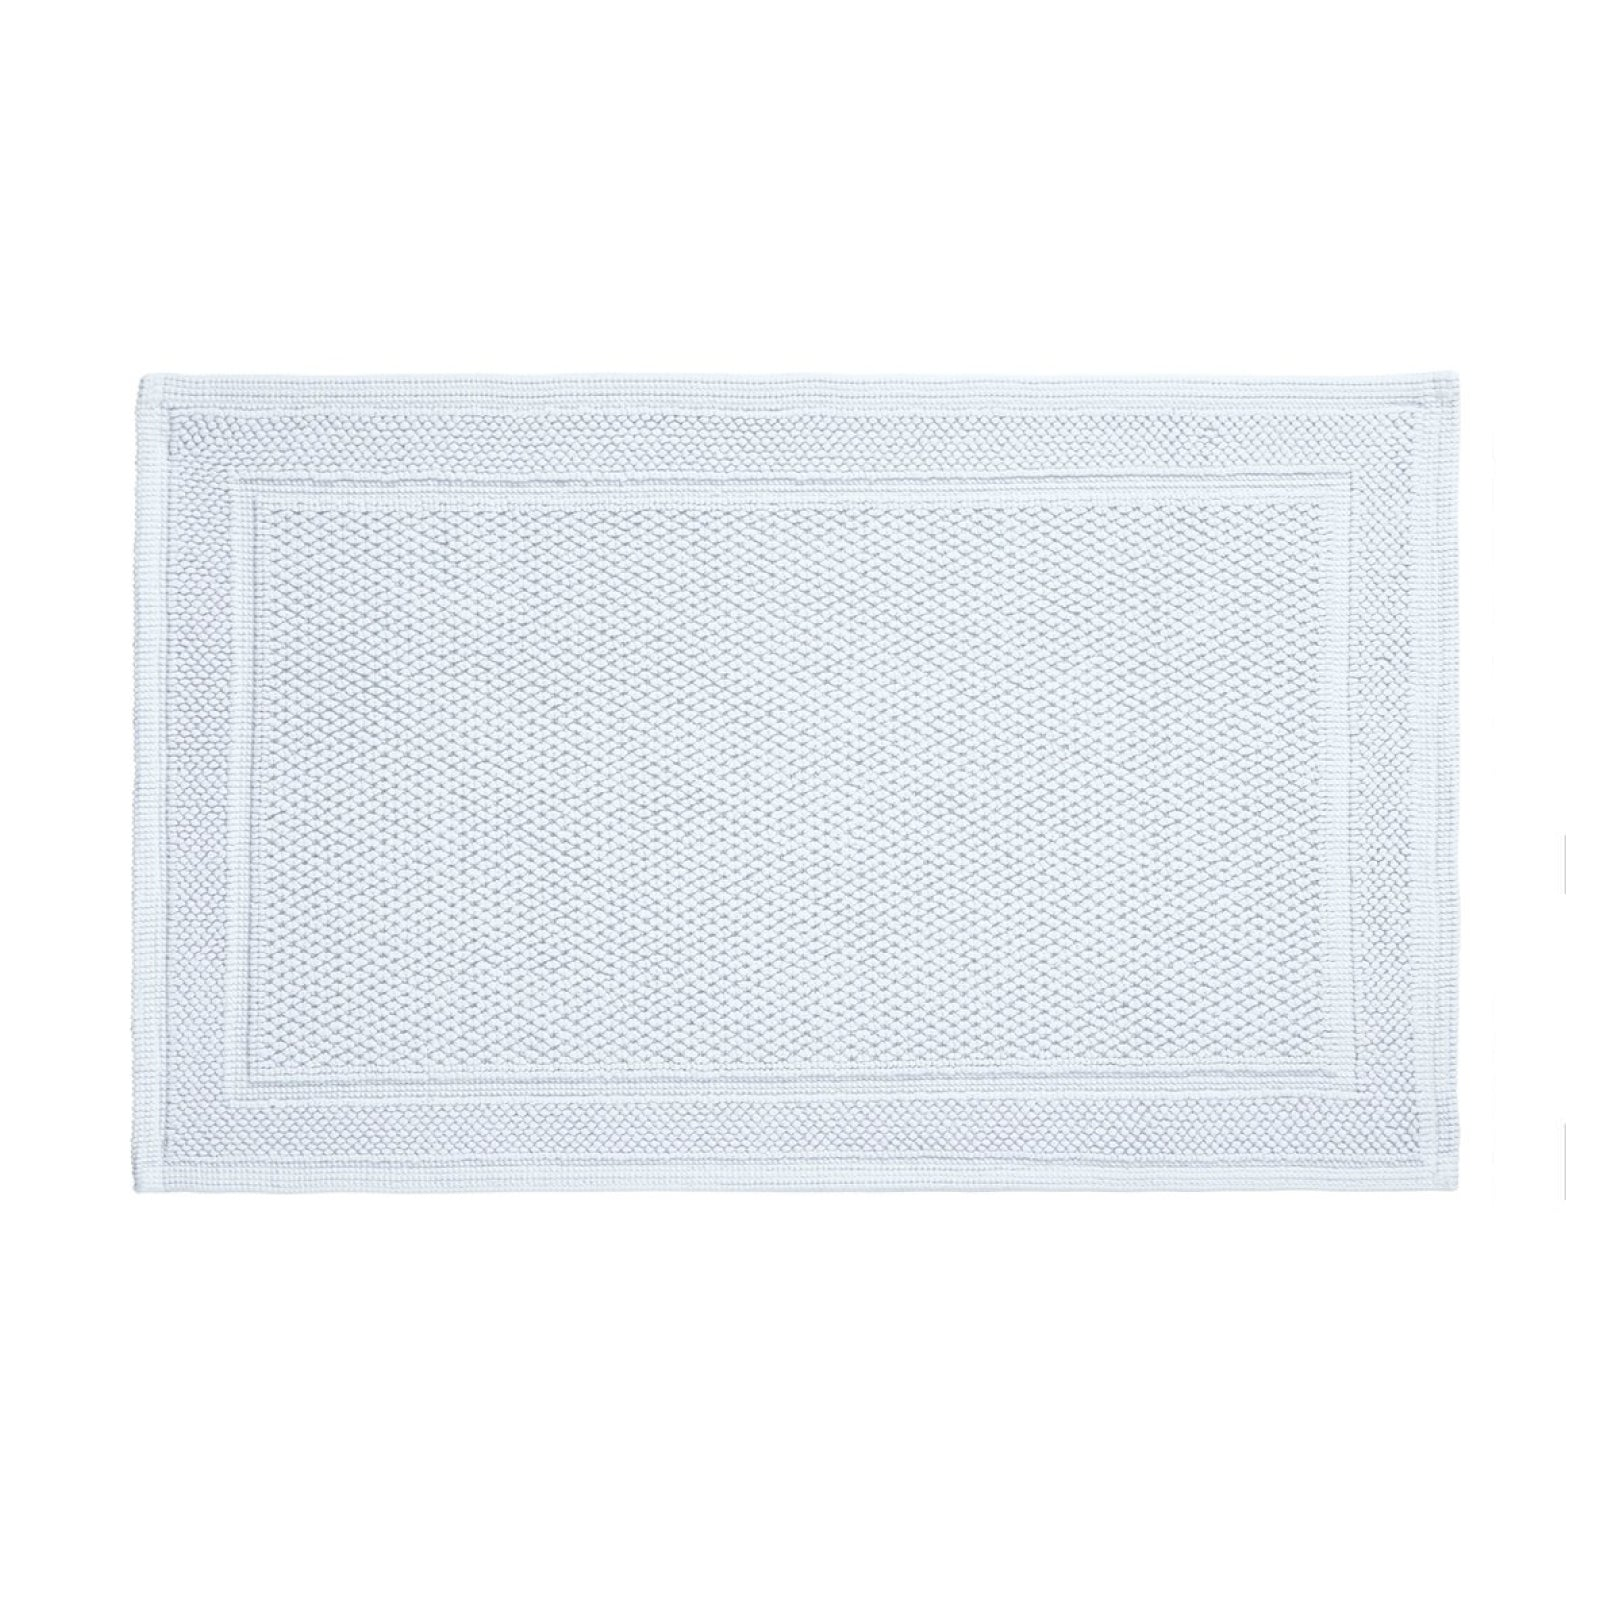 Cotton Bath Rug in Light Blue